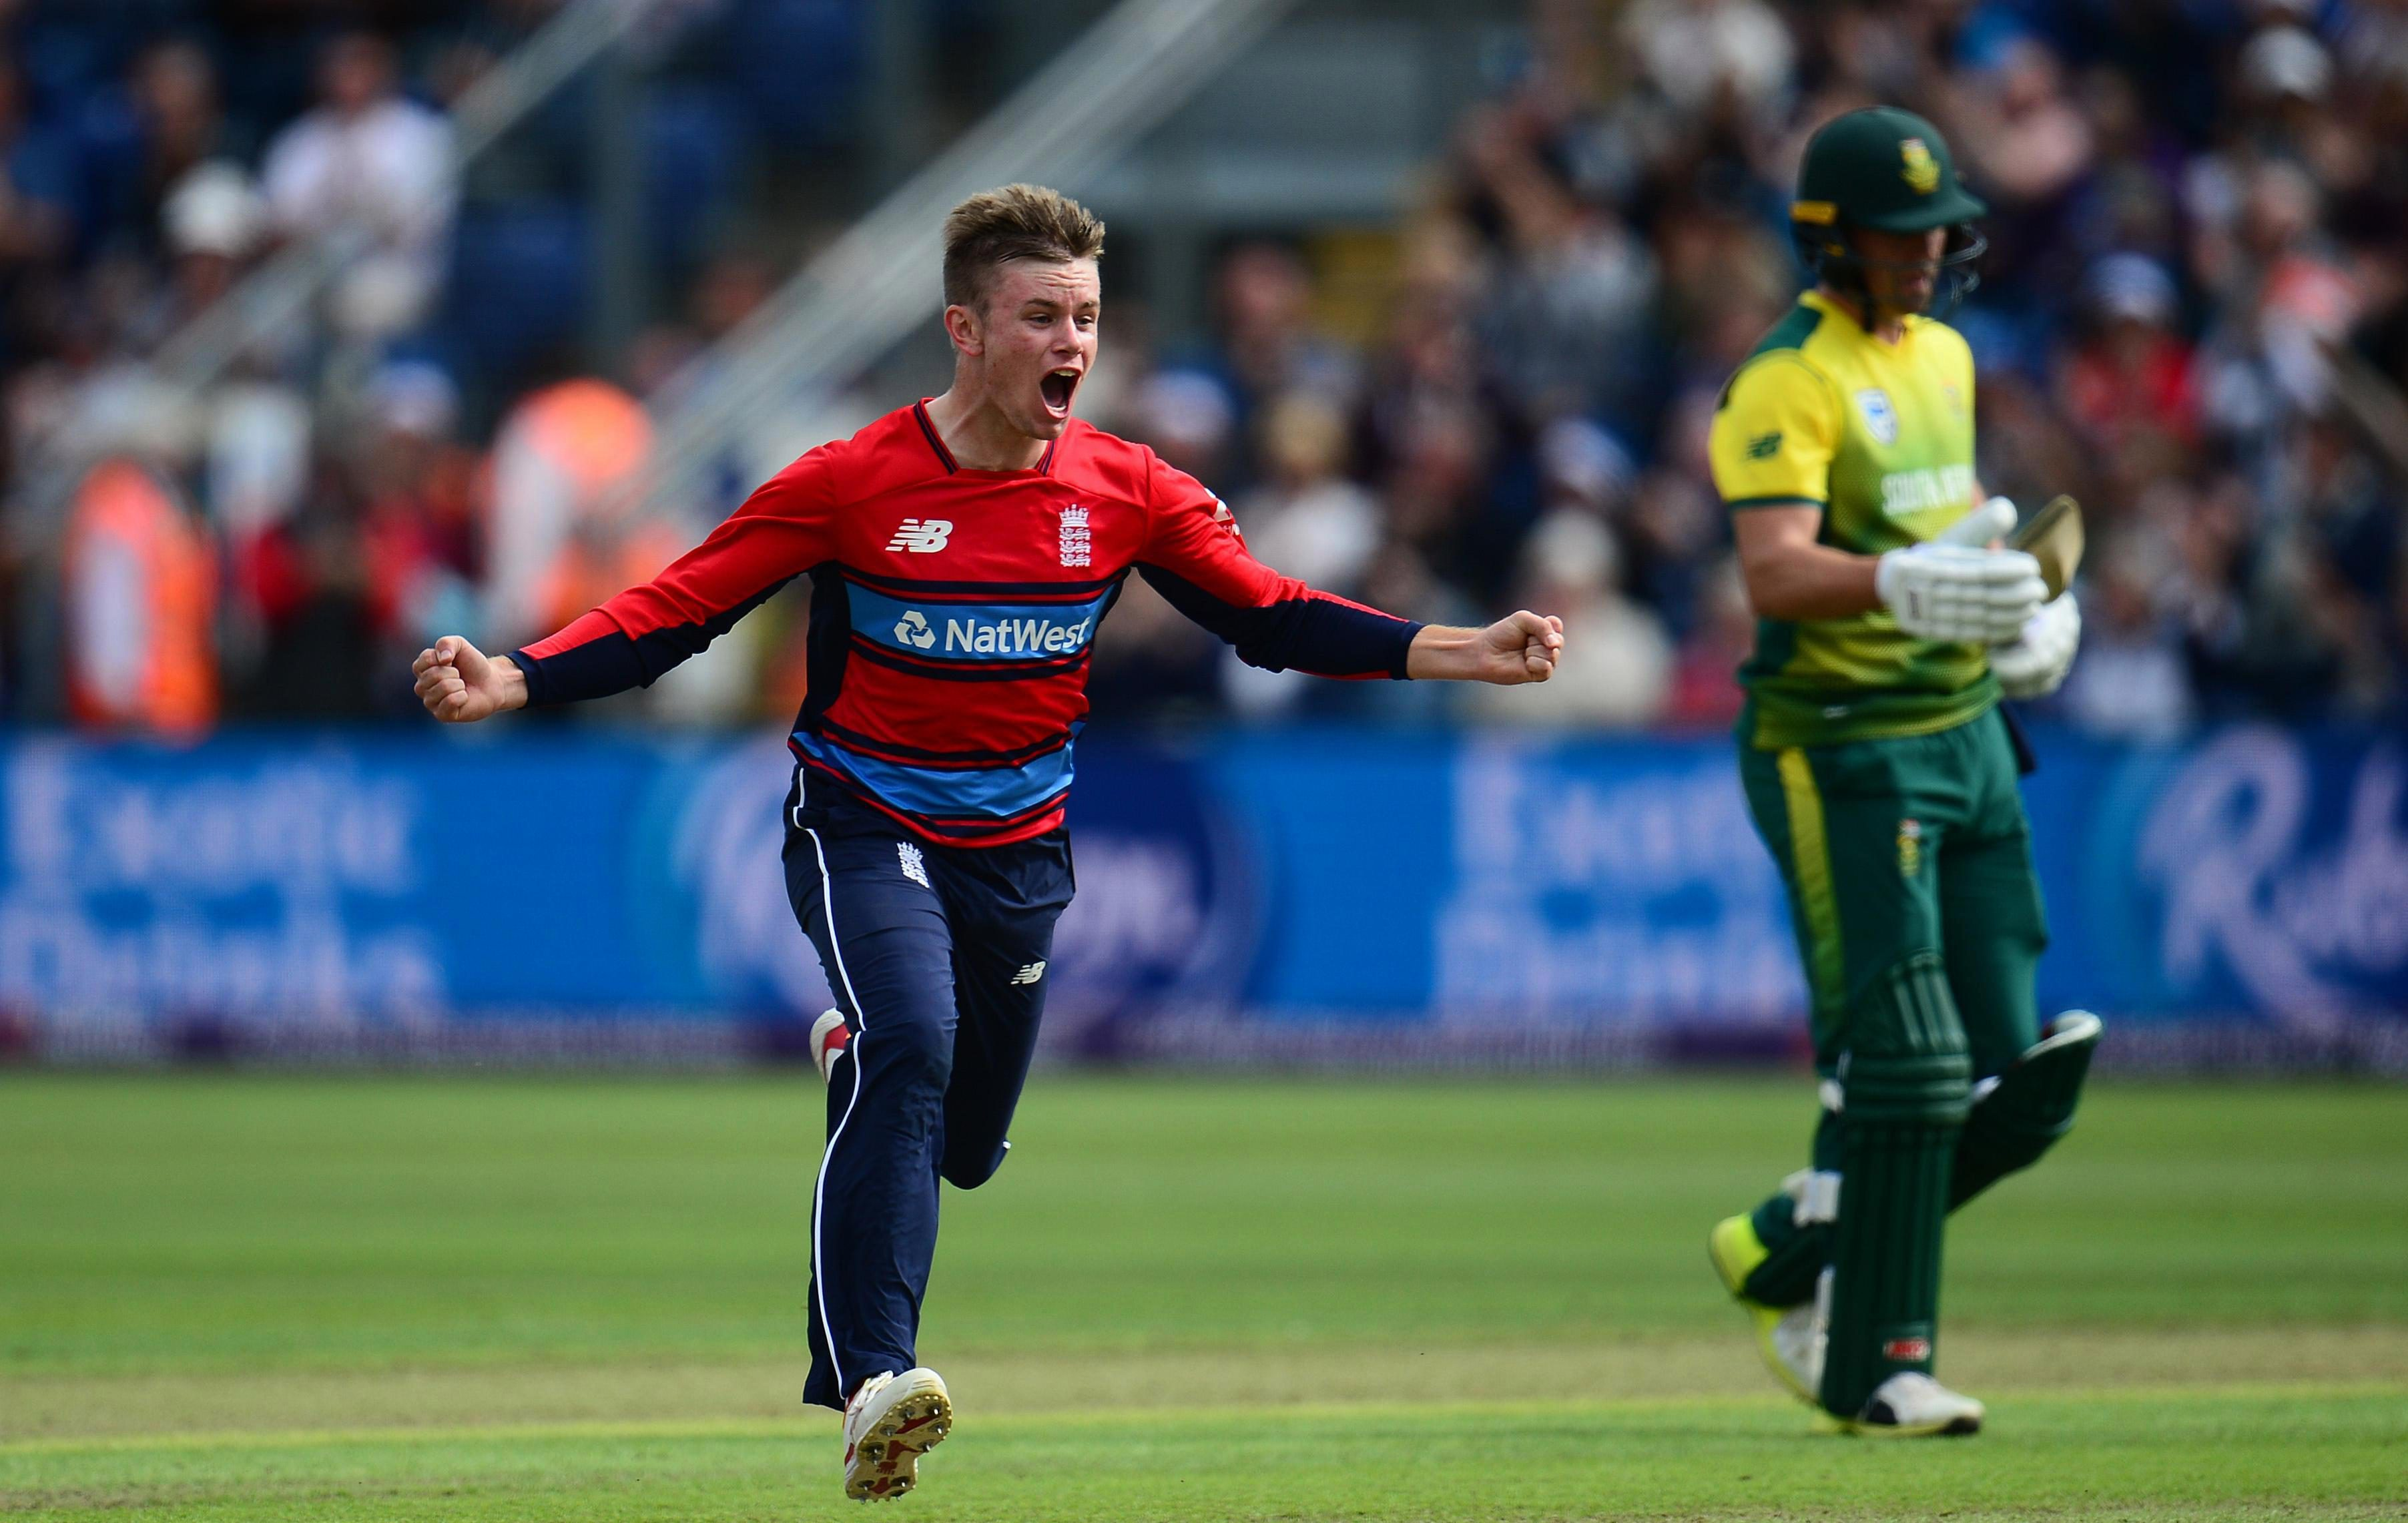 Mason Crane celebrates taking the wicket of AB de Villiers in Cardiff